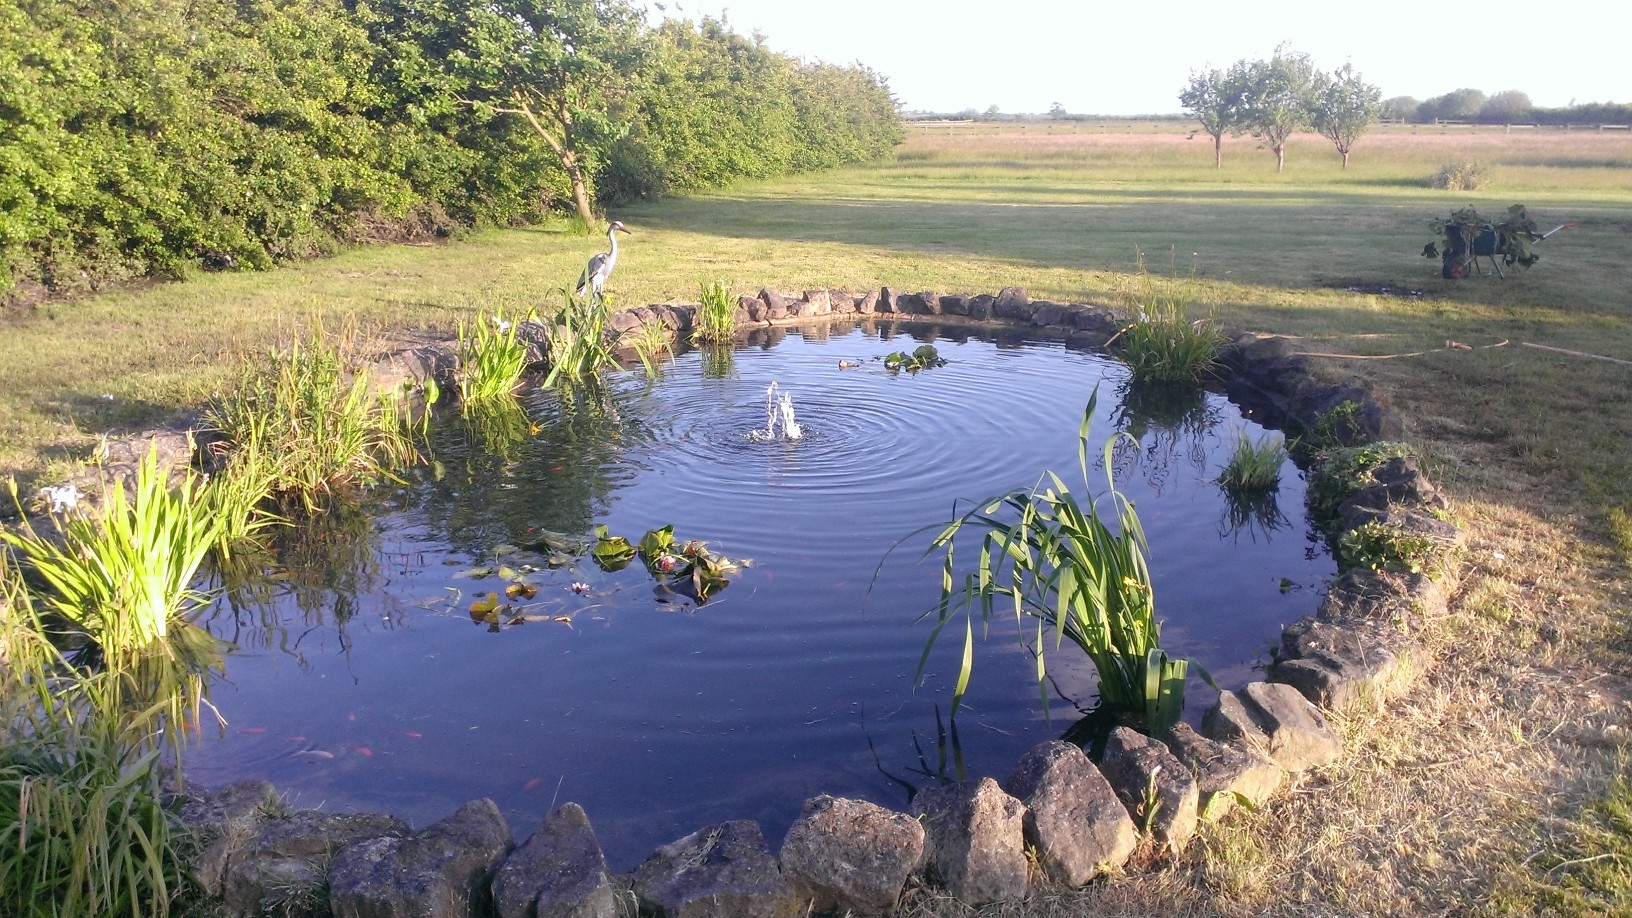 Pond cleaning specialists midlands pond services for Pond cleaning services